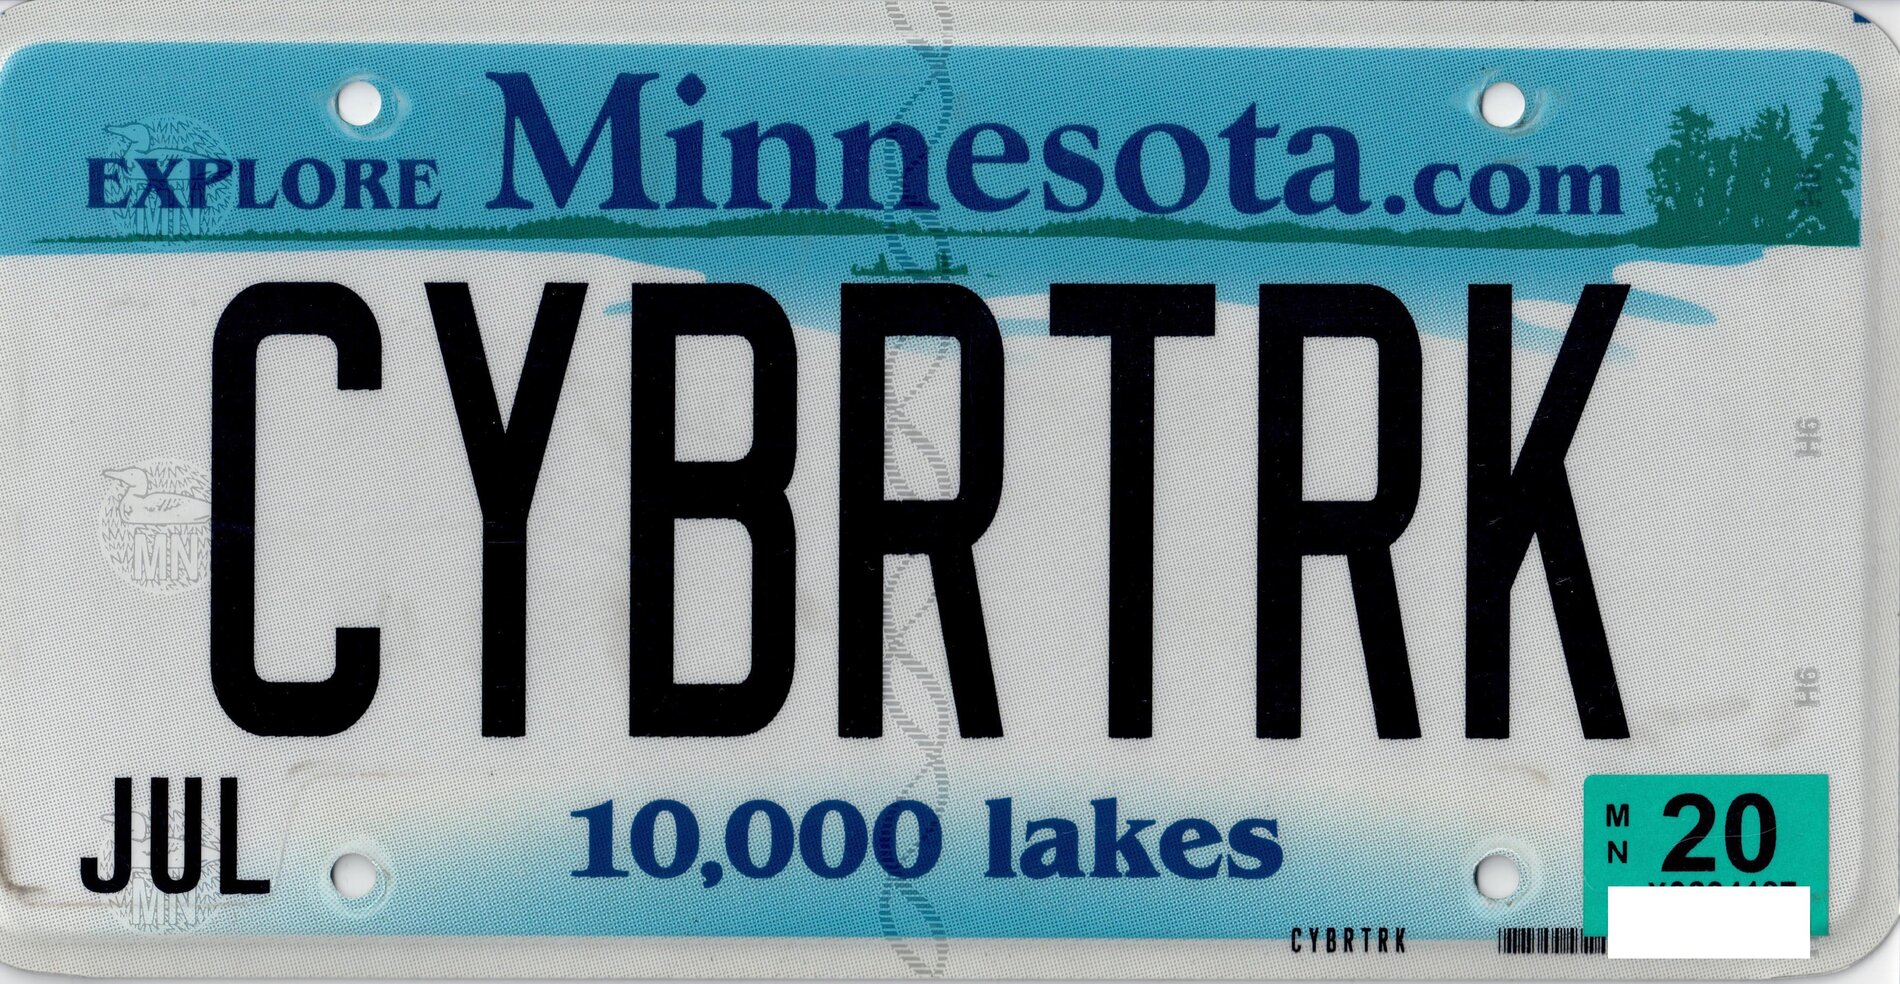 CYBRTRK license plate Normal MN A4 cropped 50%.jpg